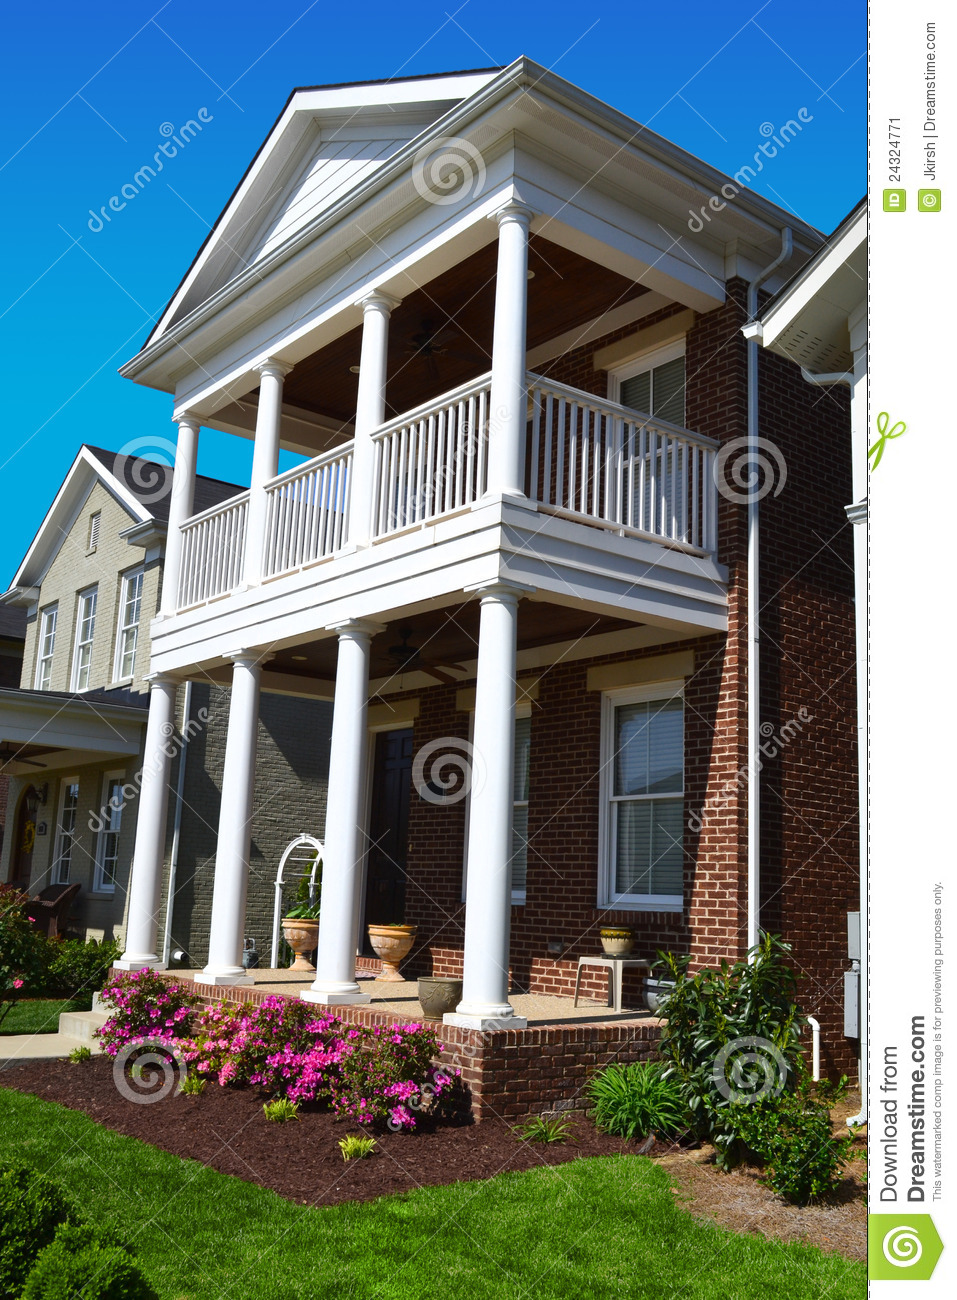 Brick cape cod style home with porch stock image image for Cape cod homes with front porches